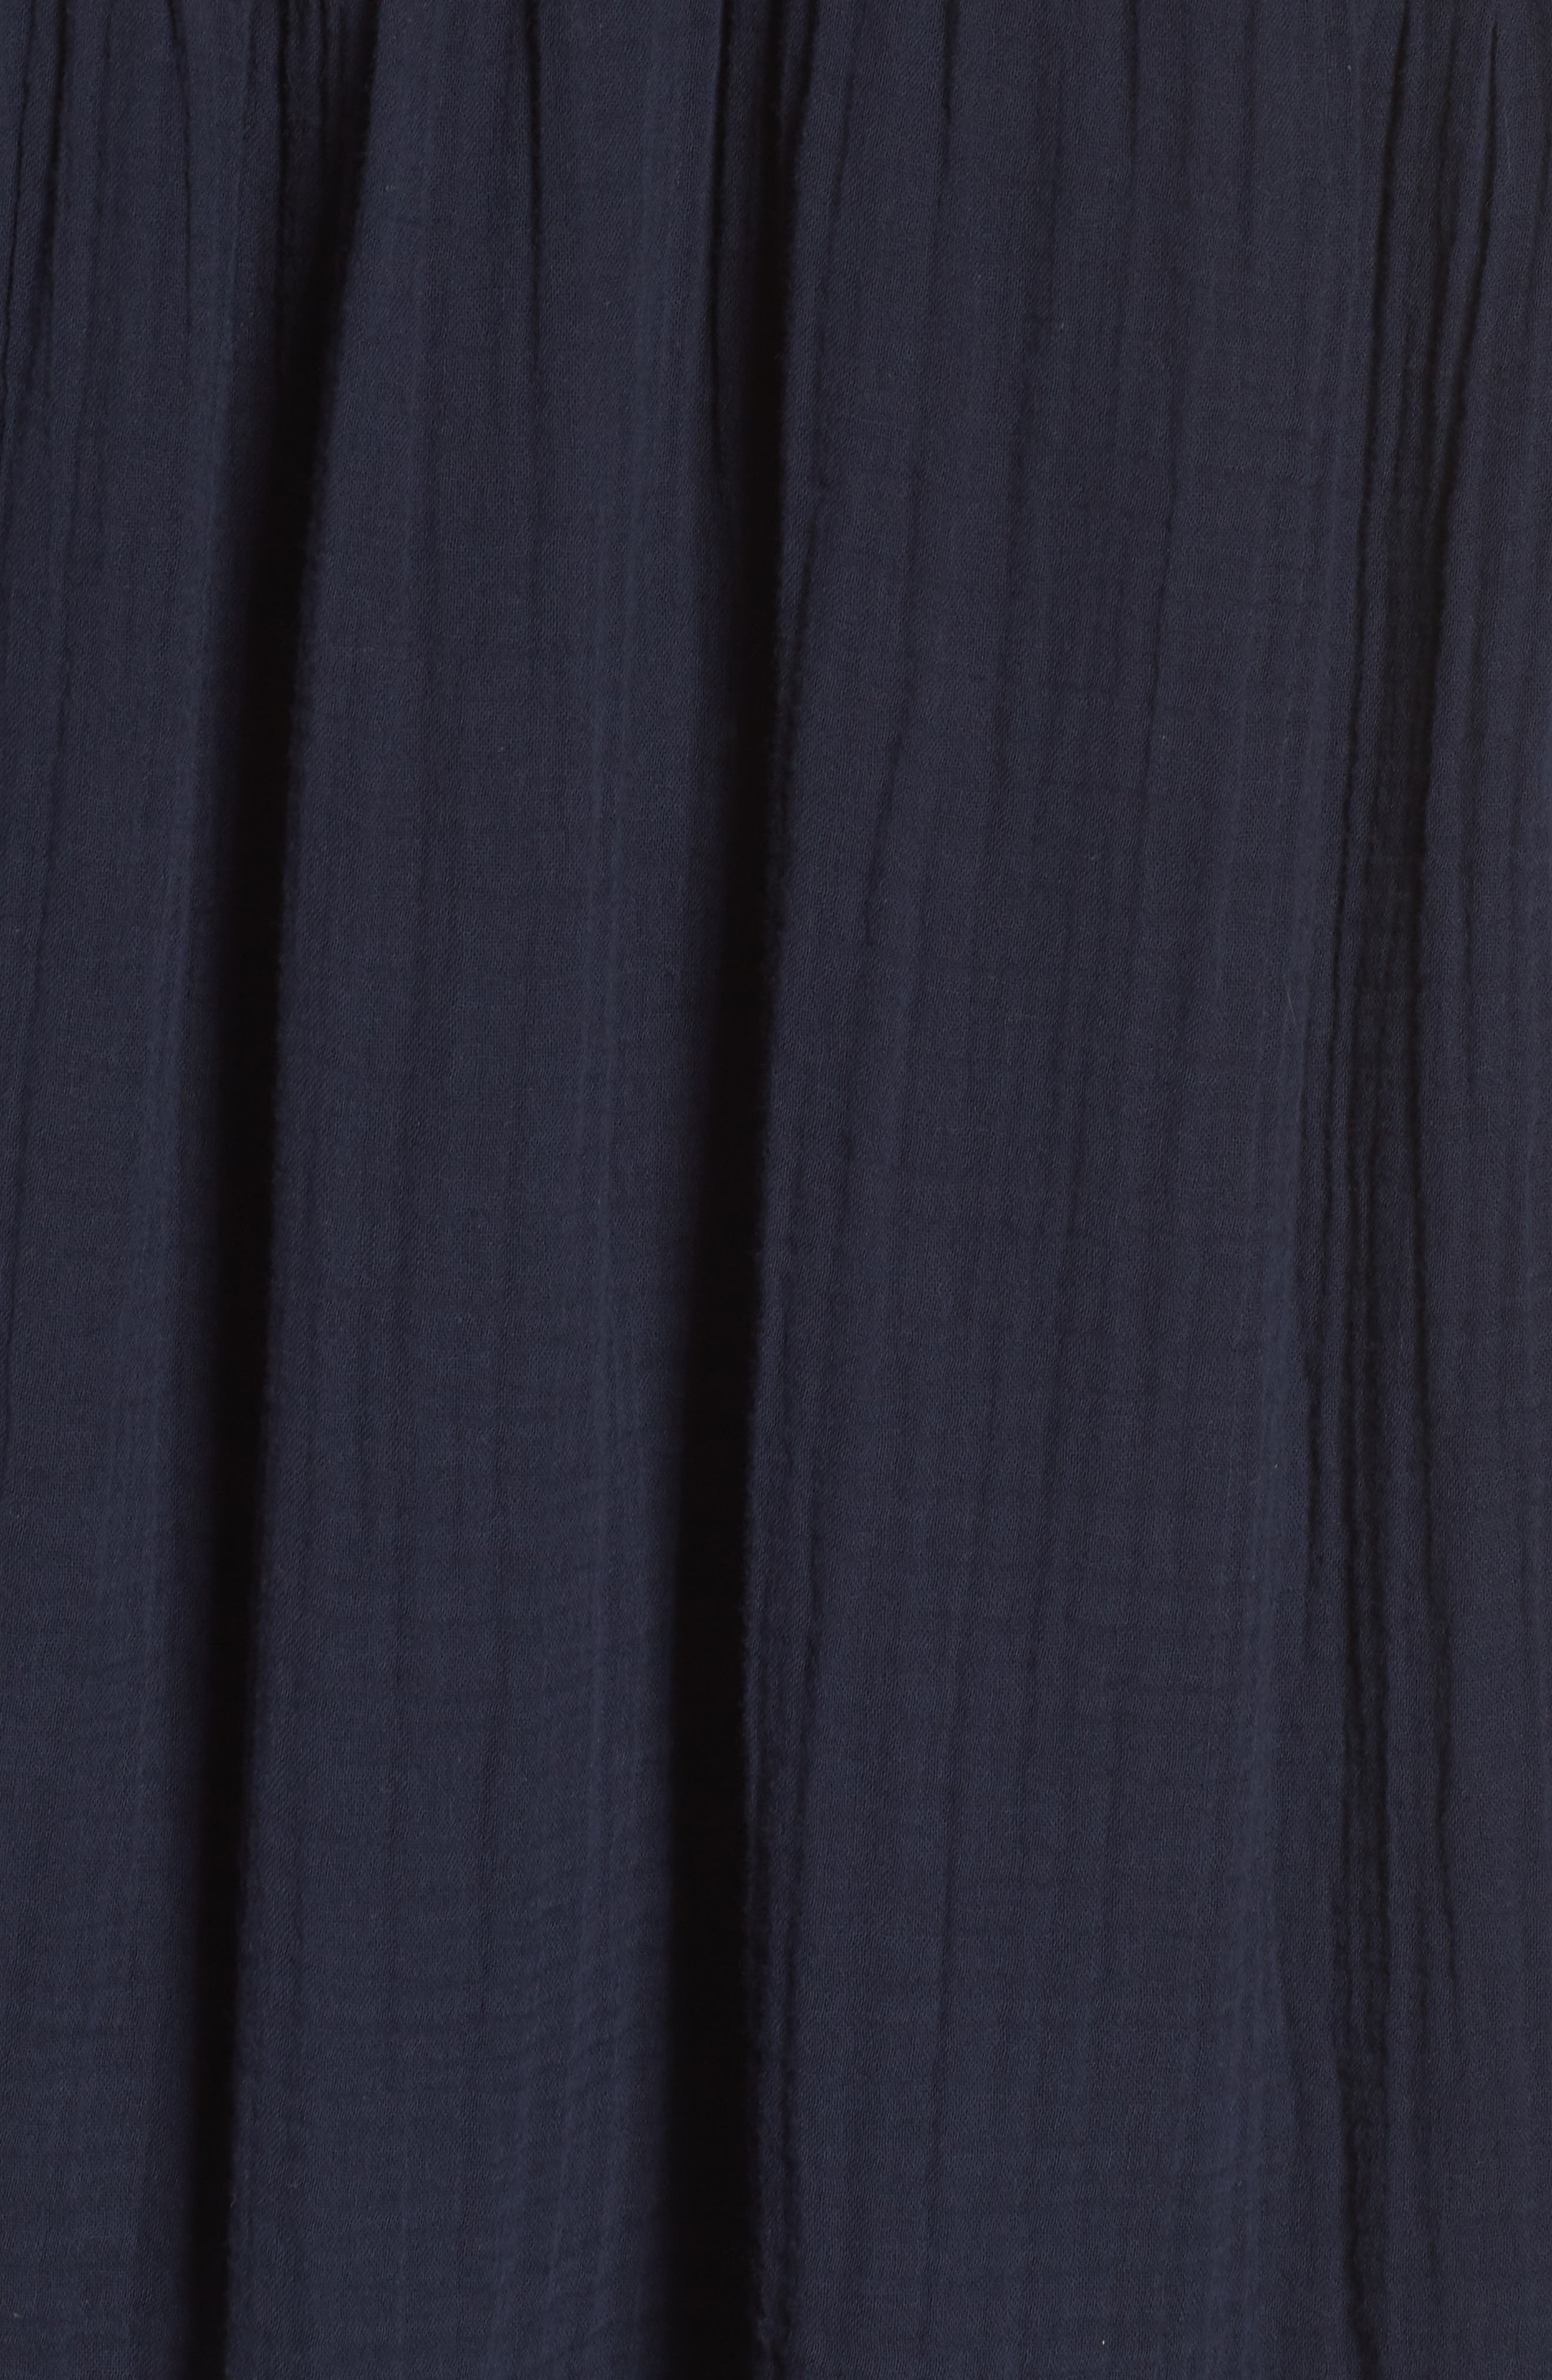 Embroidered Puff Sleeve Dress,                             Alternate thumbnail 6, color,                             NAVY ELLERY EMB